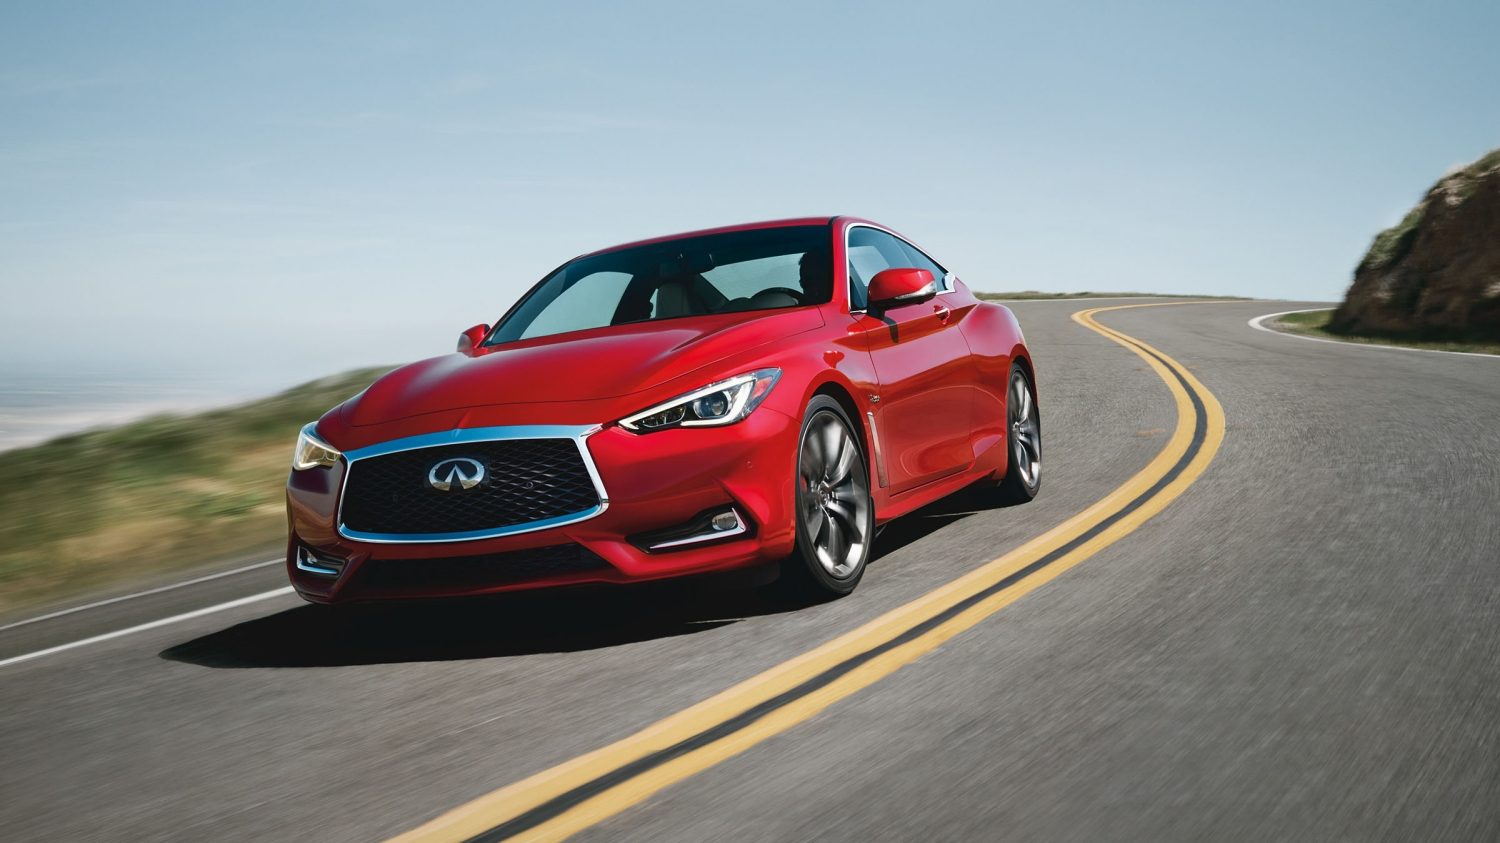 2018 INFINITI Q60 Red Sport 400 Sports Coupe | Aggressive Body Creases and Deep Curves